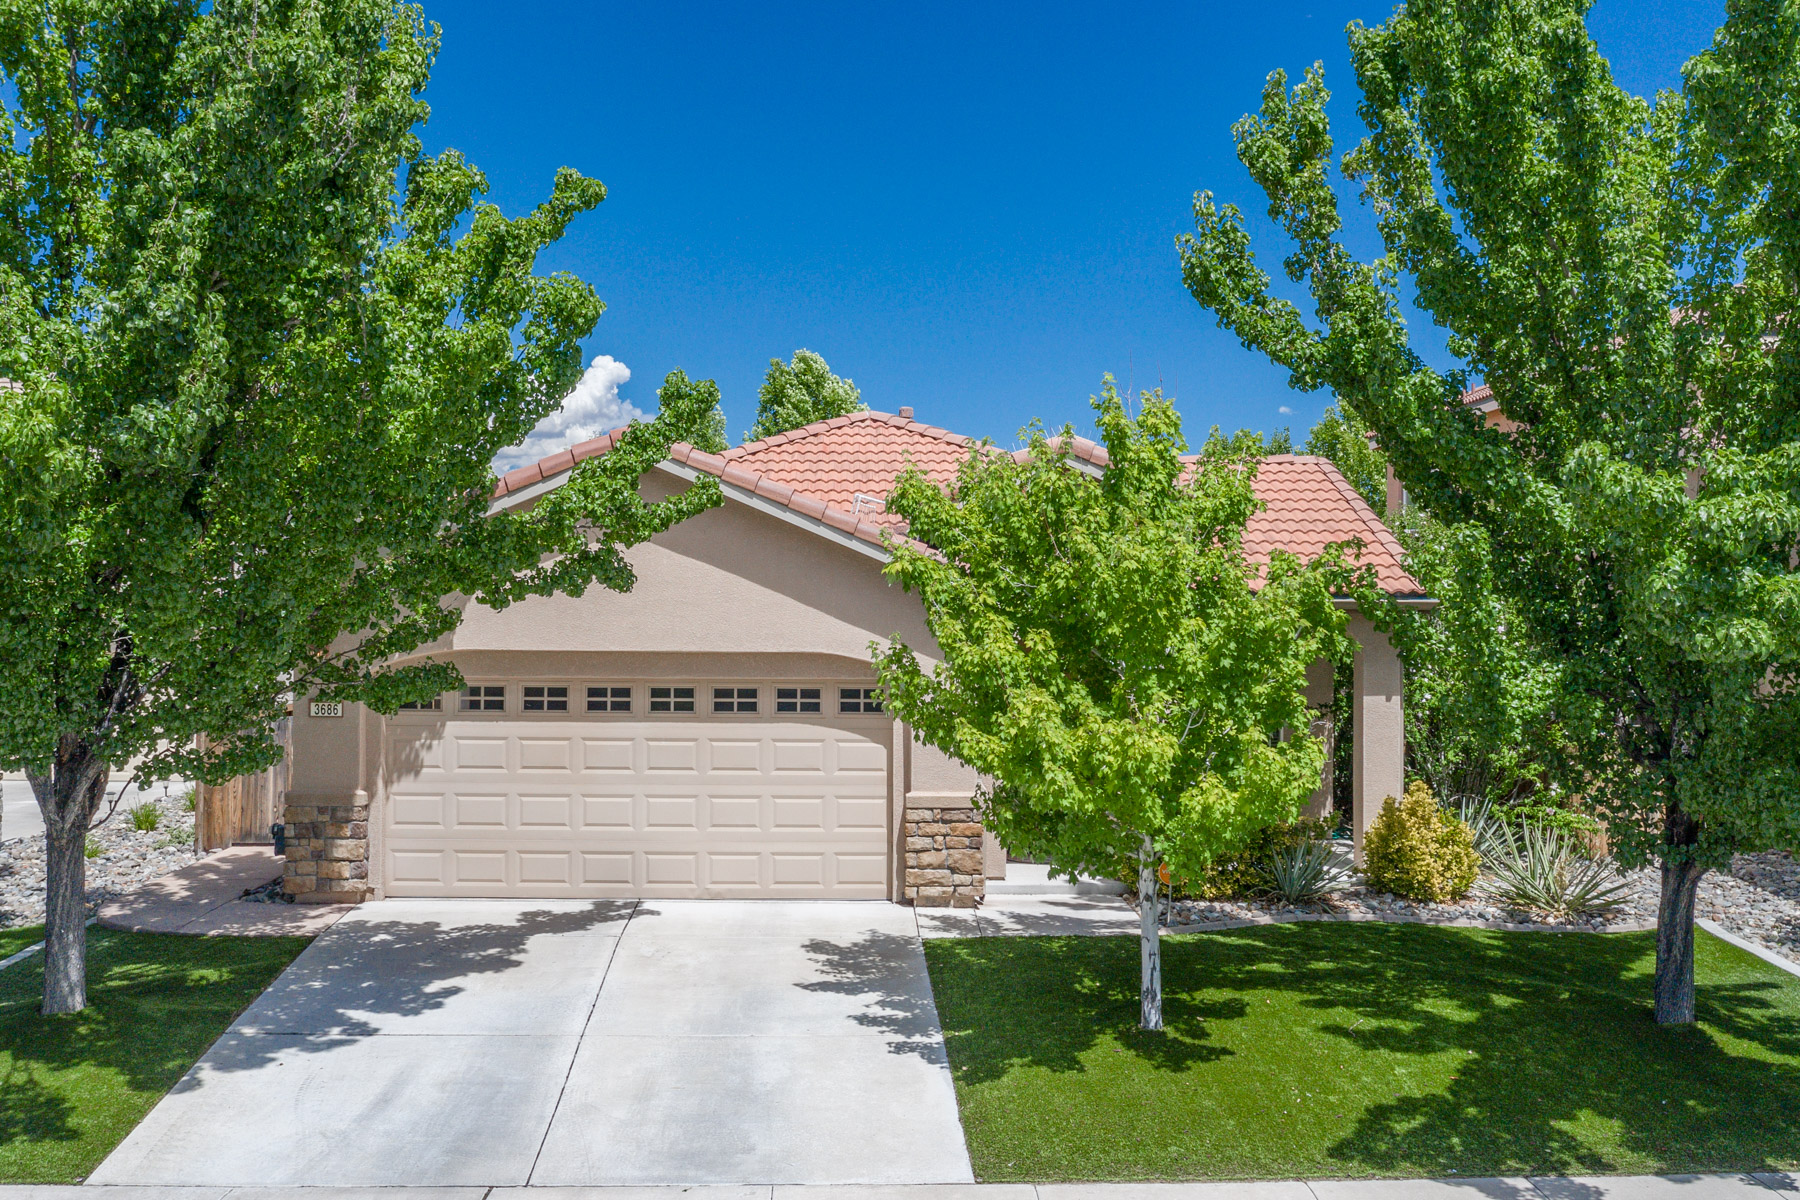 Single Family Homes for Active at 3686 Lepus Drive, Sparks, Nevada 3686 Lepus Drive Sparks, Nevada 89436 United States